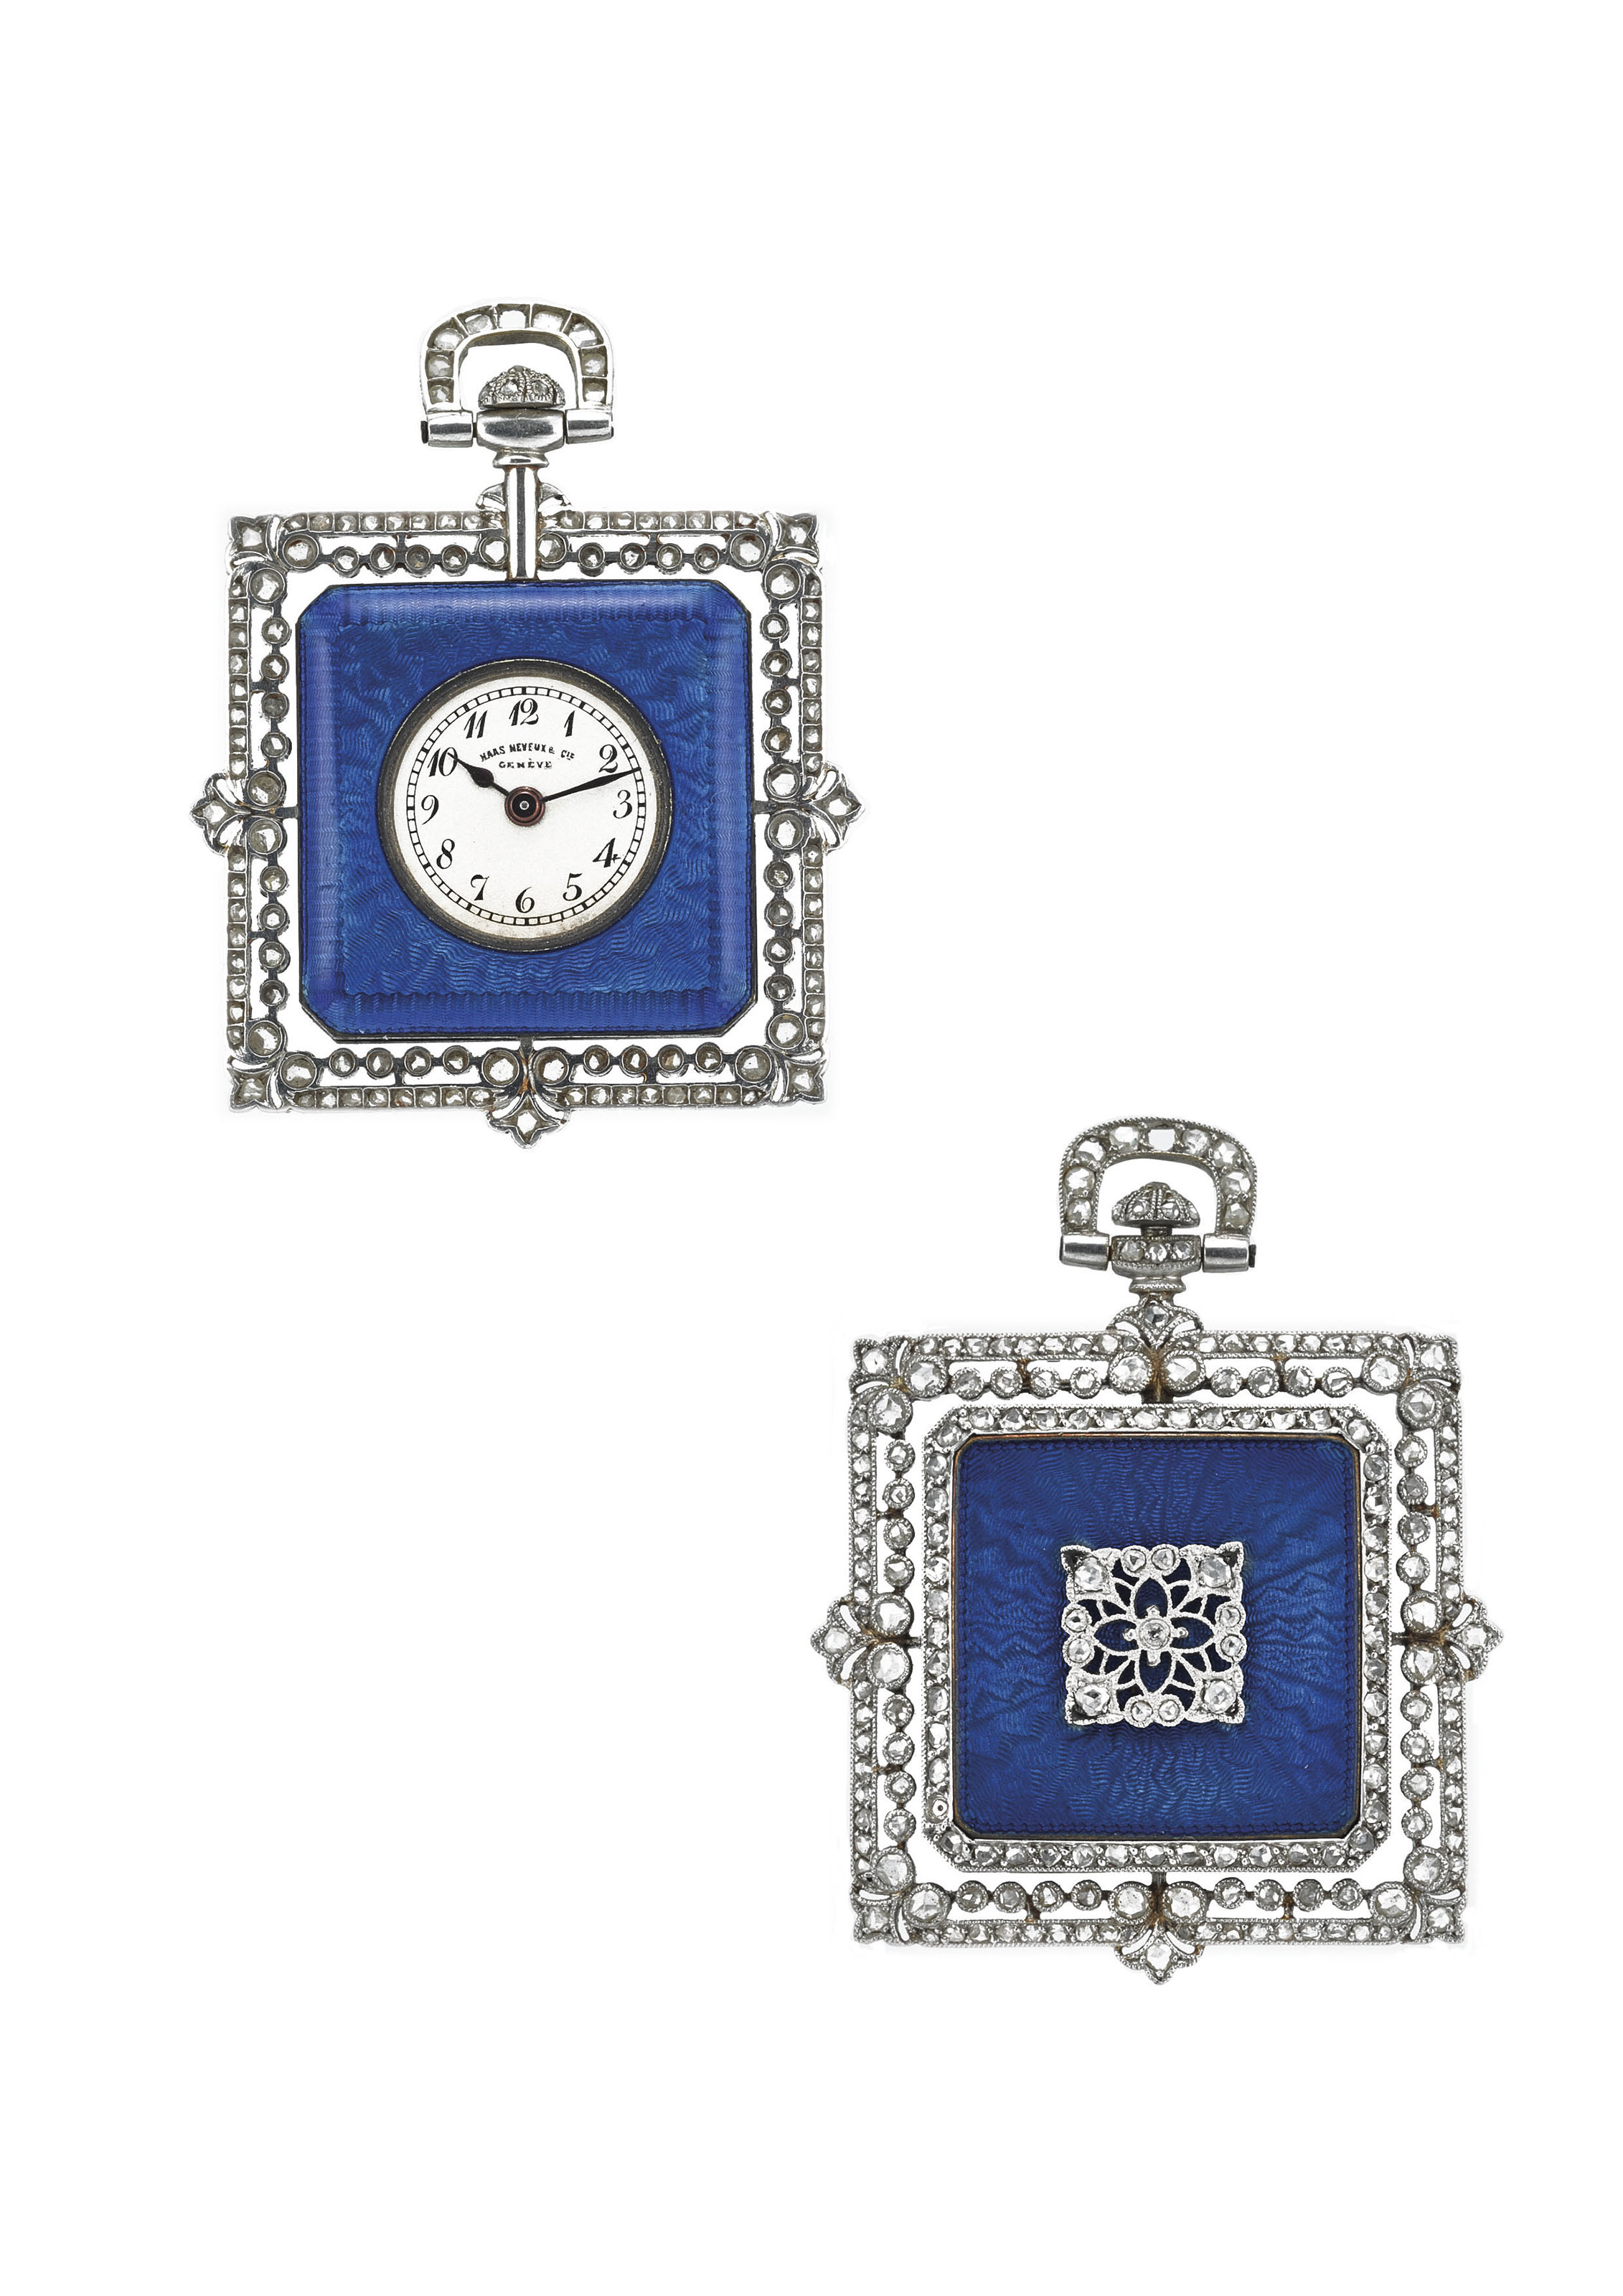 HAAS NEVEUX & CIE. A VERY FINE AND RARE 18K WHITE GOLD, ENAMEL AND DIAMOND-SET KEYLESS PENDANT WATCH